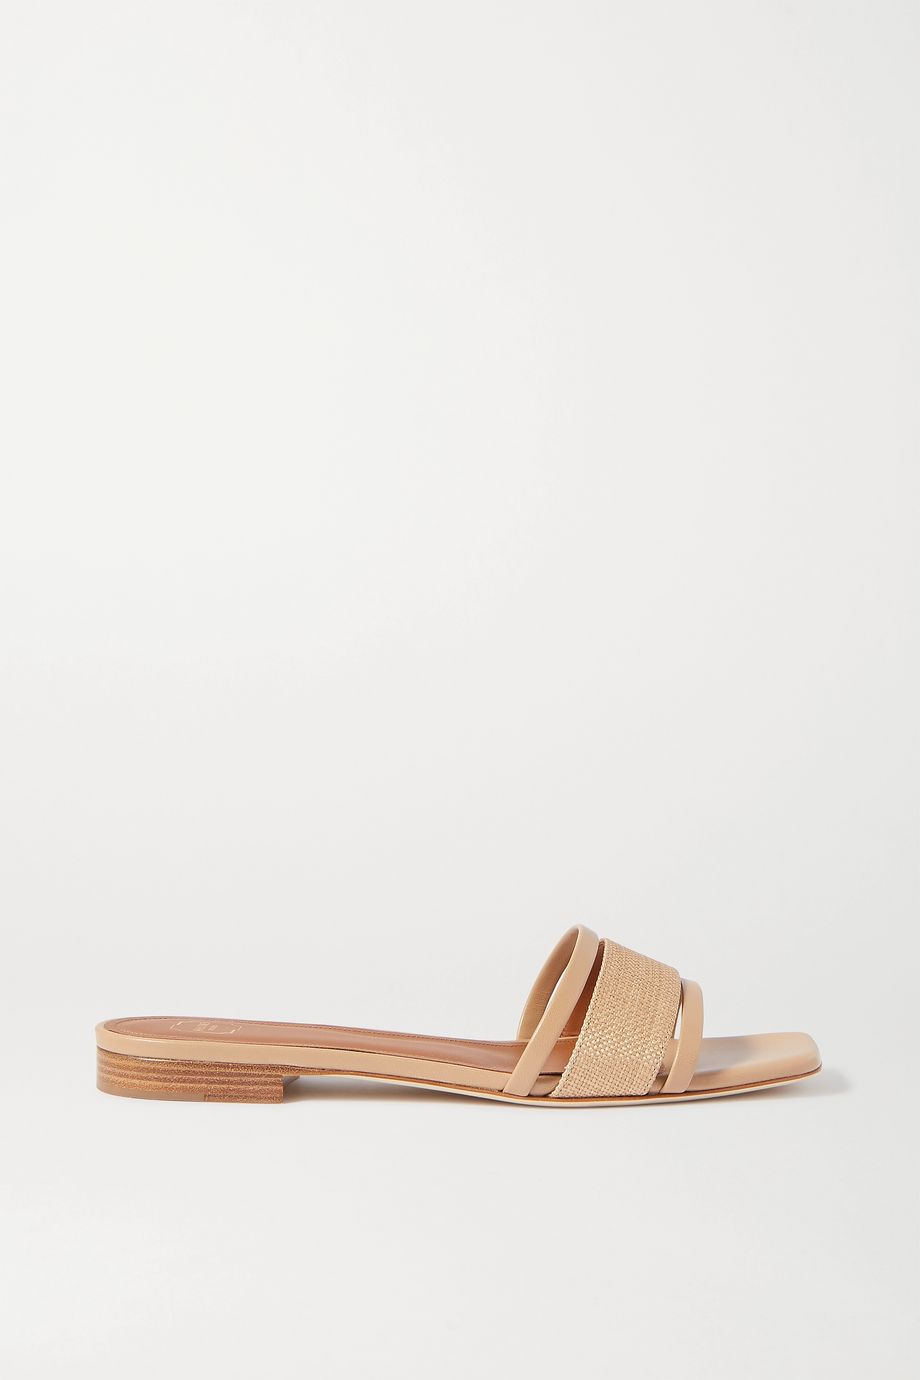 Malone Souliers Demi raffia and leather sandals